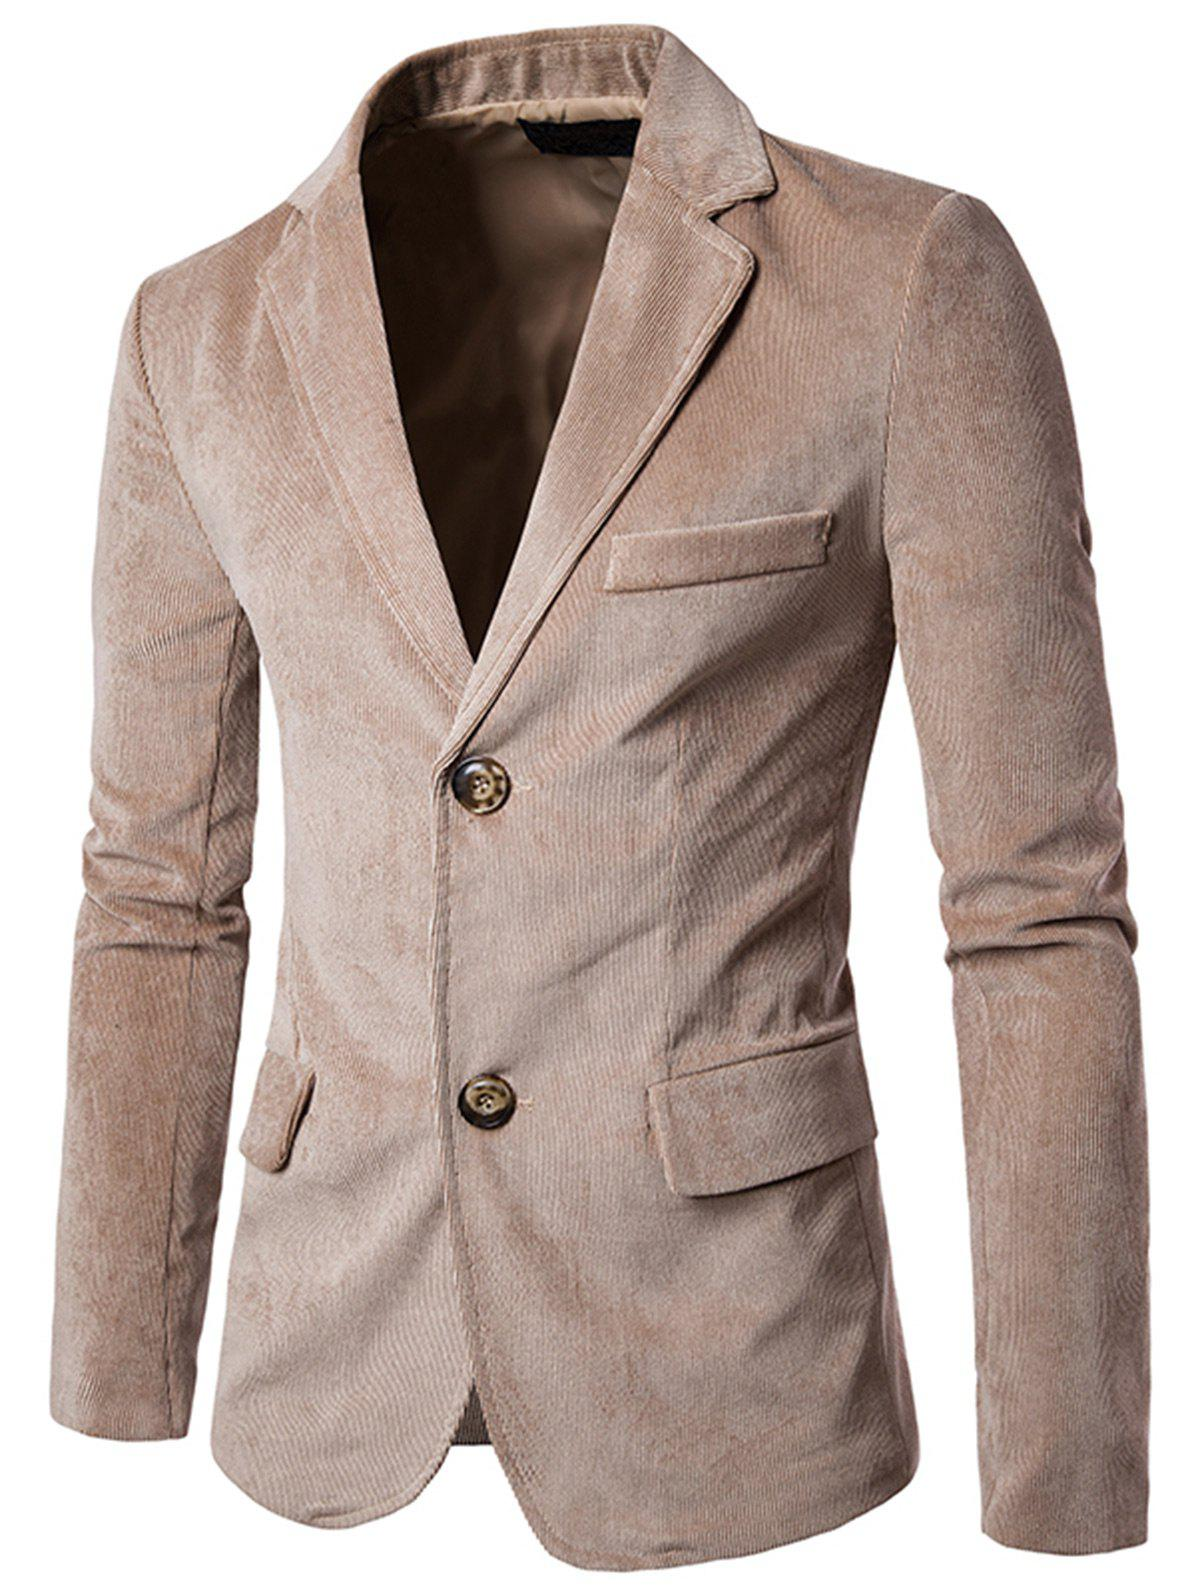 Flap Pockets Notch Lapel Corduroy Casual Blazer - CAMEL M